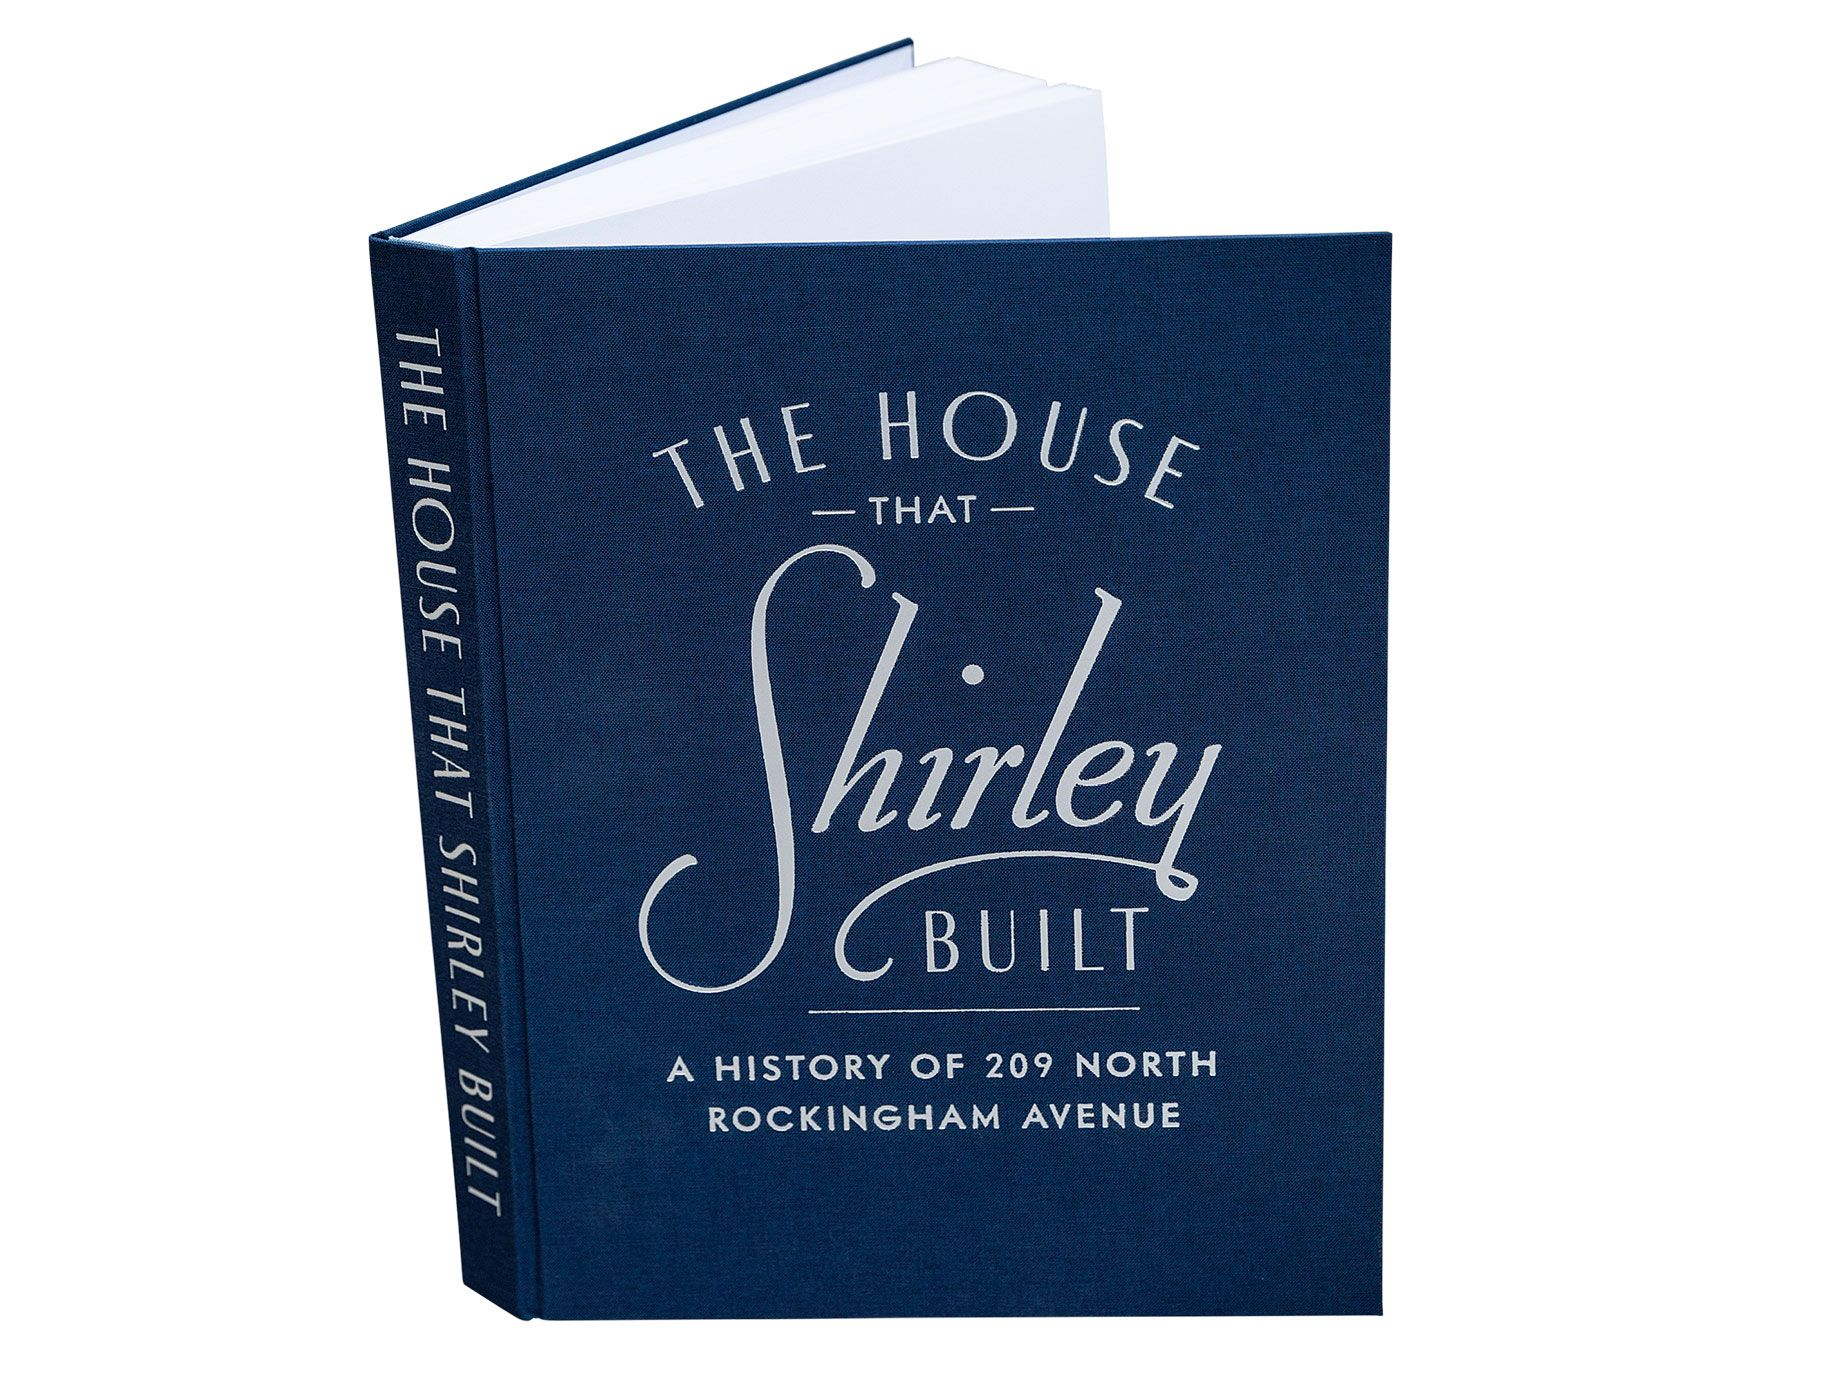 The jacket of one of David Silverman's books, The House That Shirley Built: A History of 209 North Rockingham Avenue.